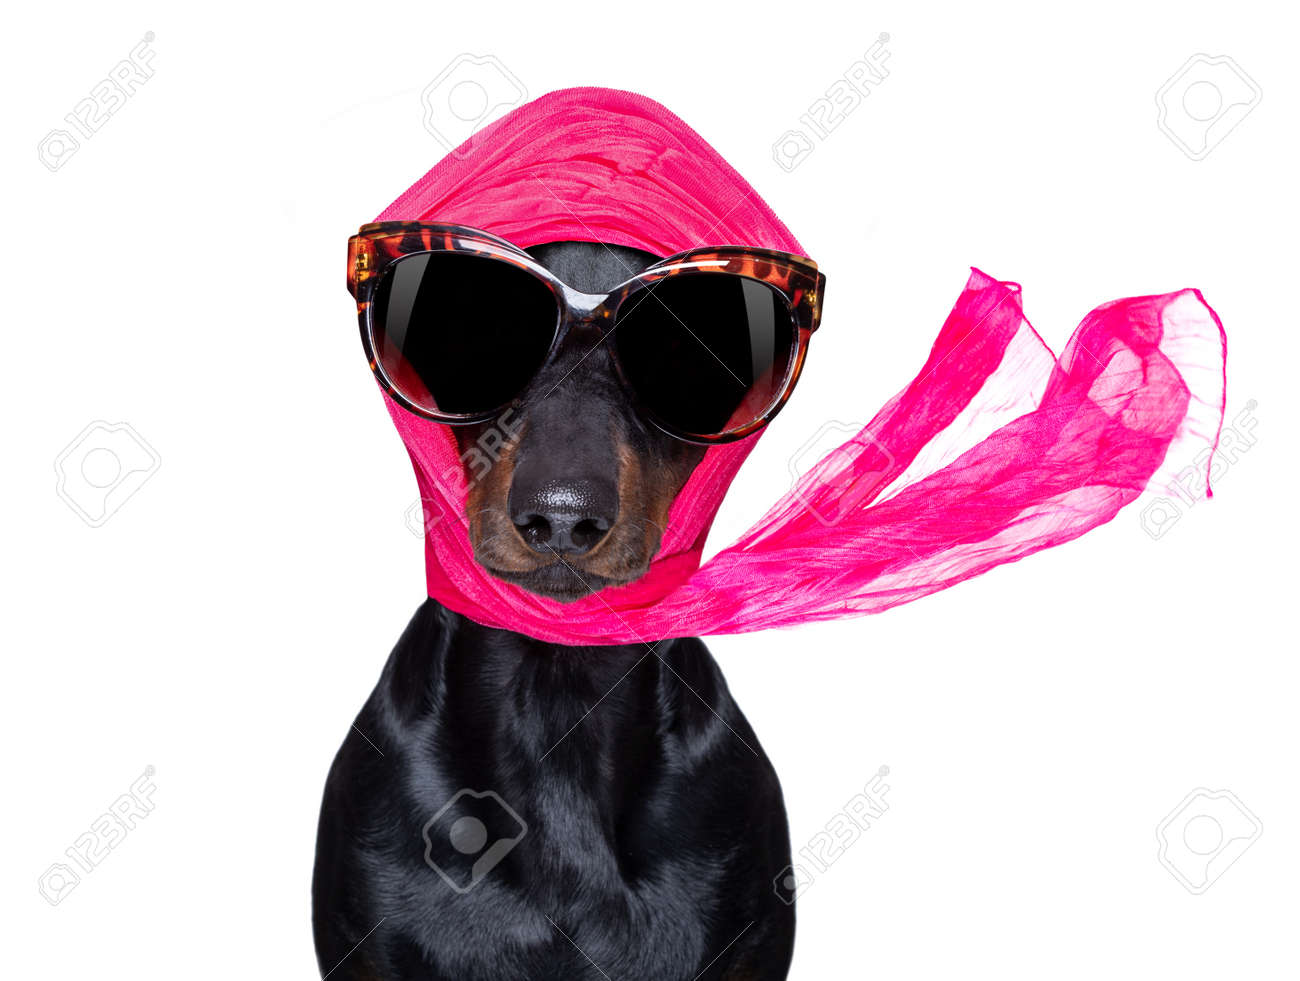 chic fashionable diva luxury cool dog with funny sunglasses, scarf and necklace, isolated on white background - 150166109